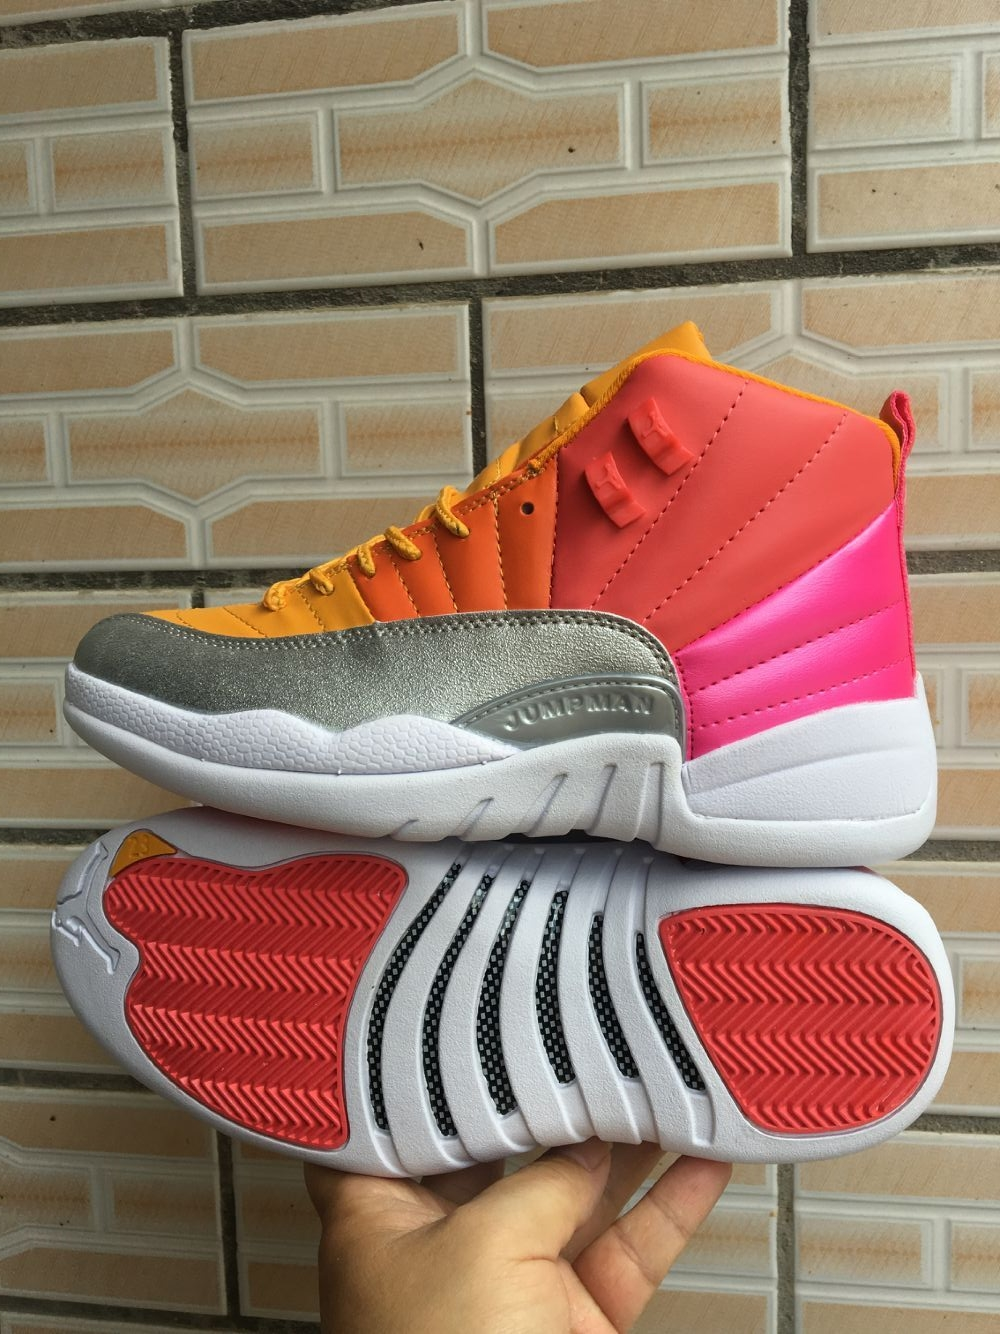 2019 Air Jordan 12 Rainbow Red Yellow Silver White Shoes